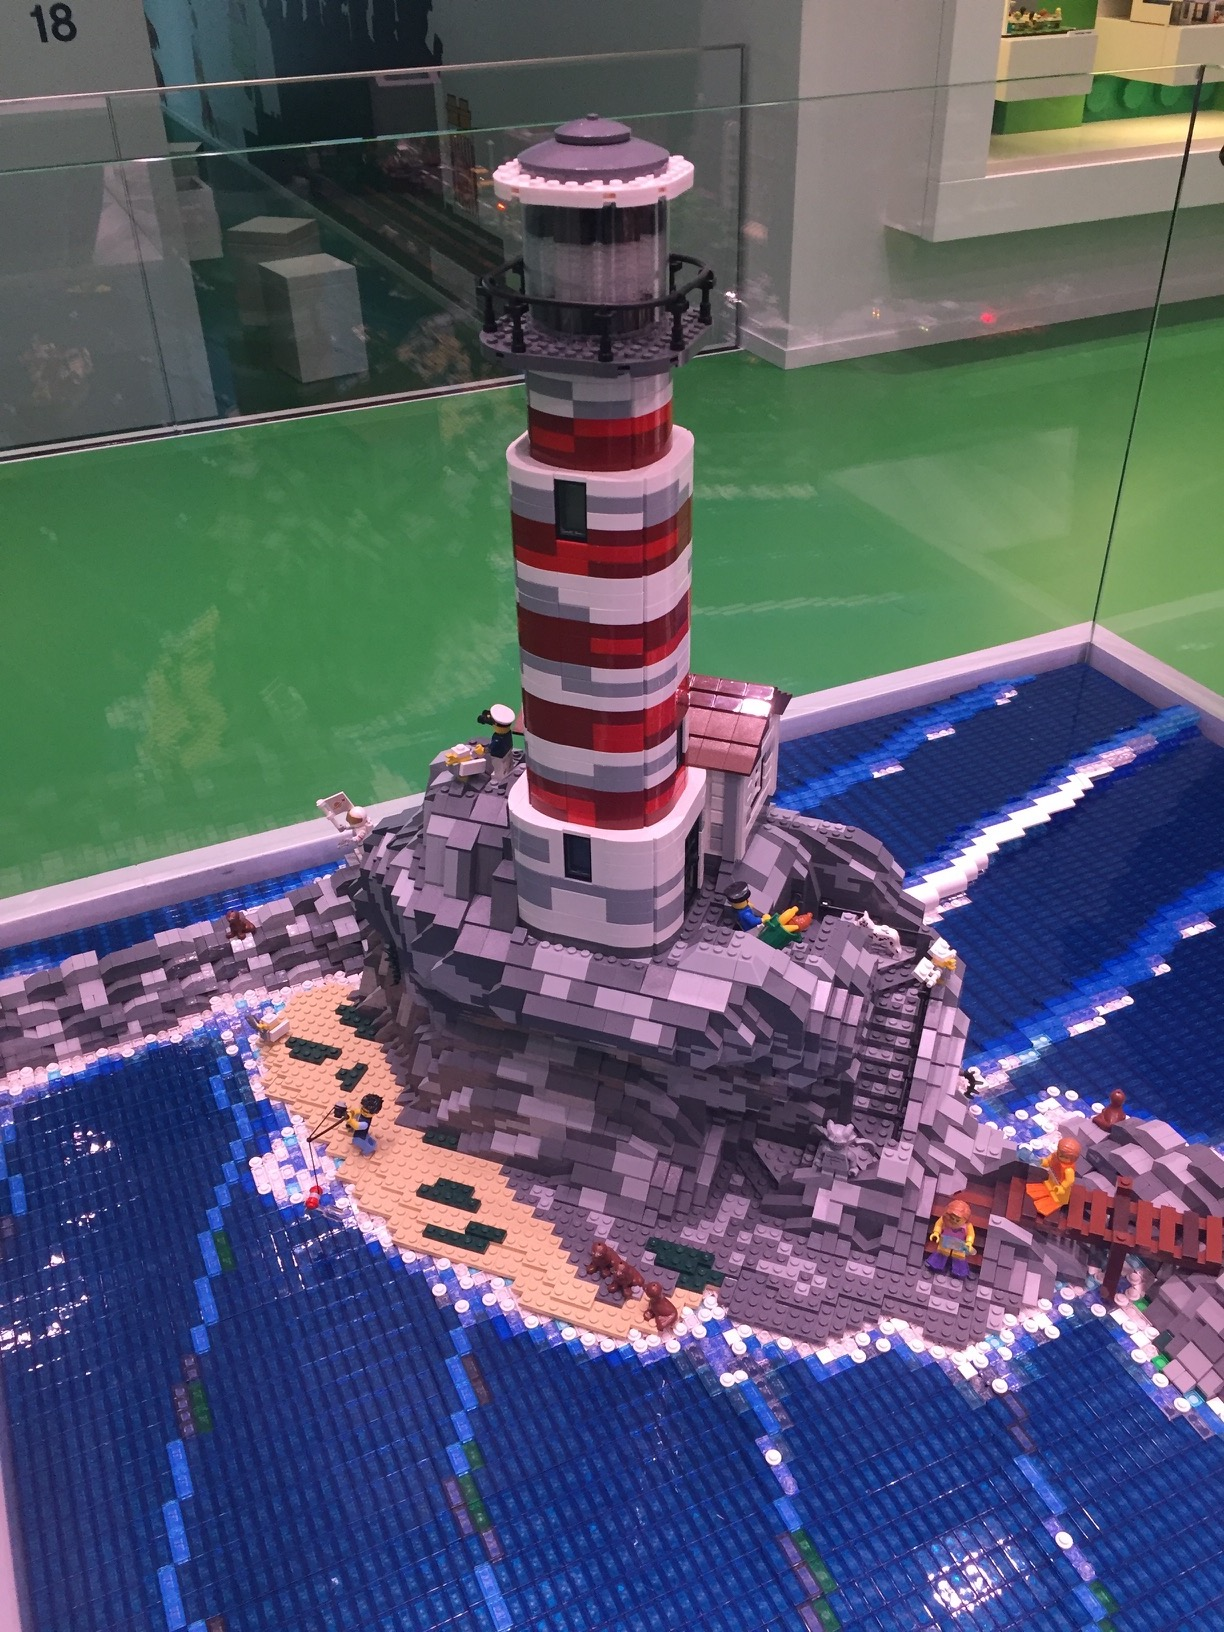 A LEGO lighthouse on a rocky island with a small beach, breaking the waves.